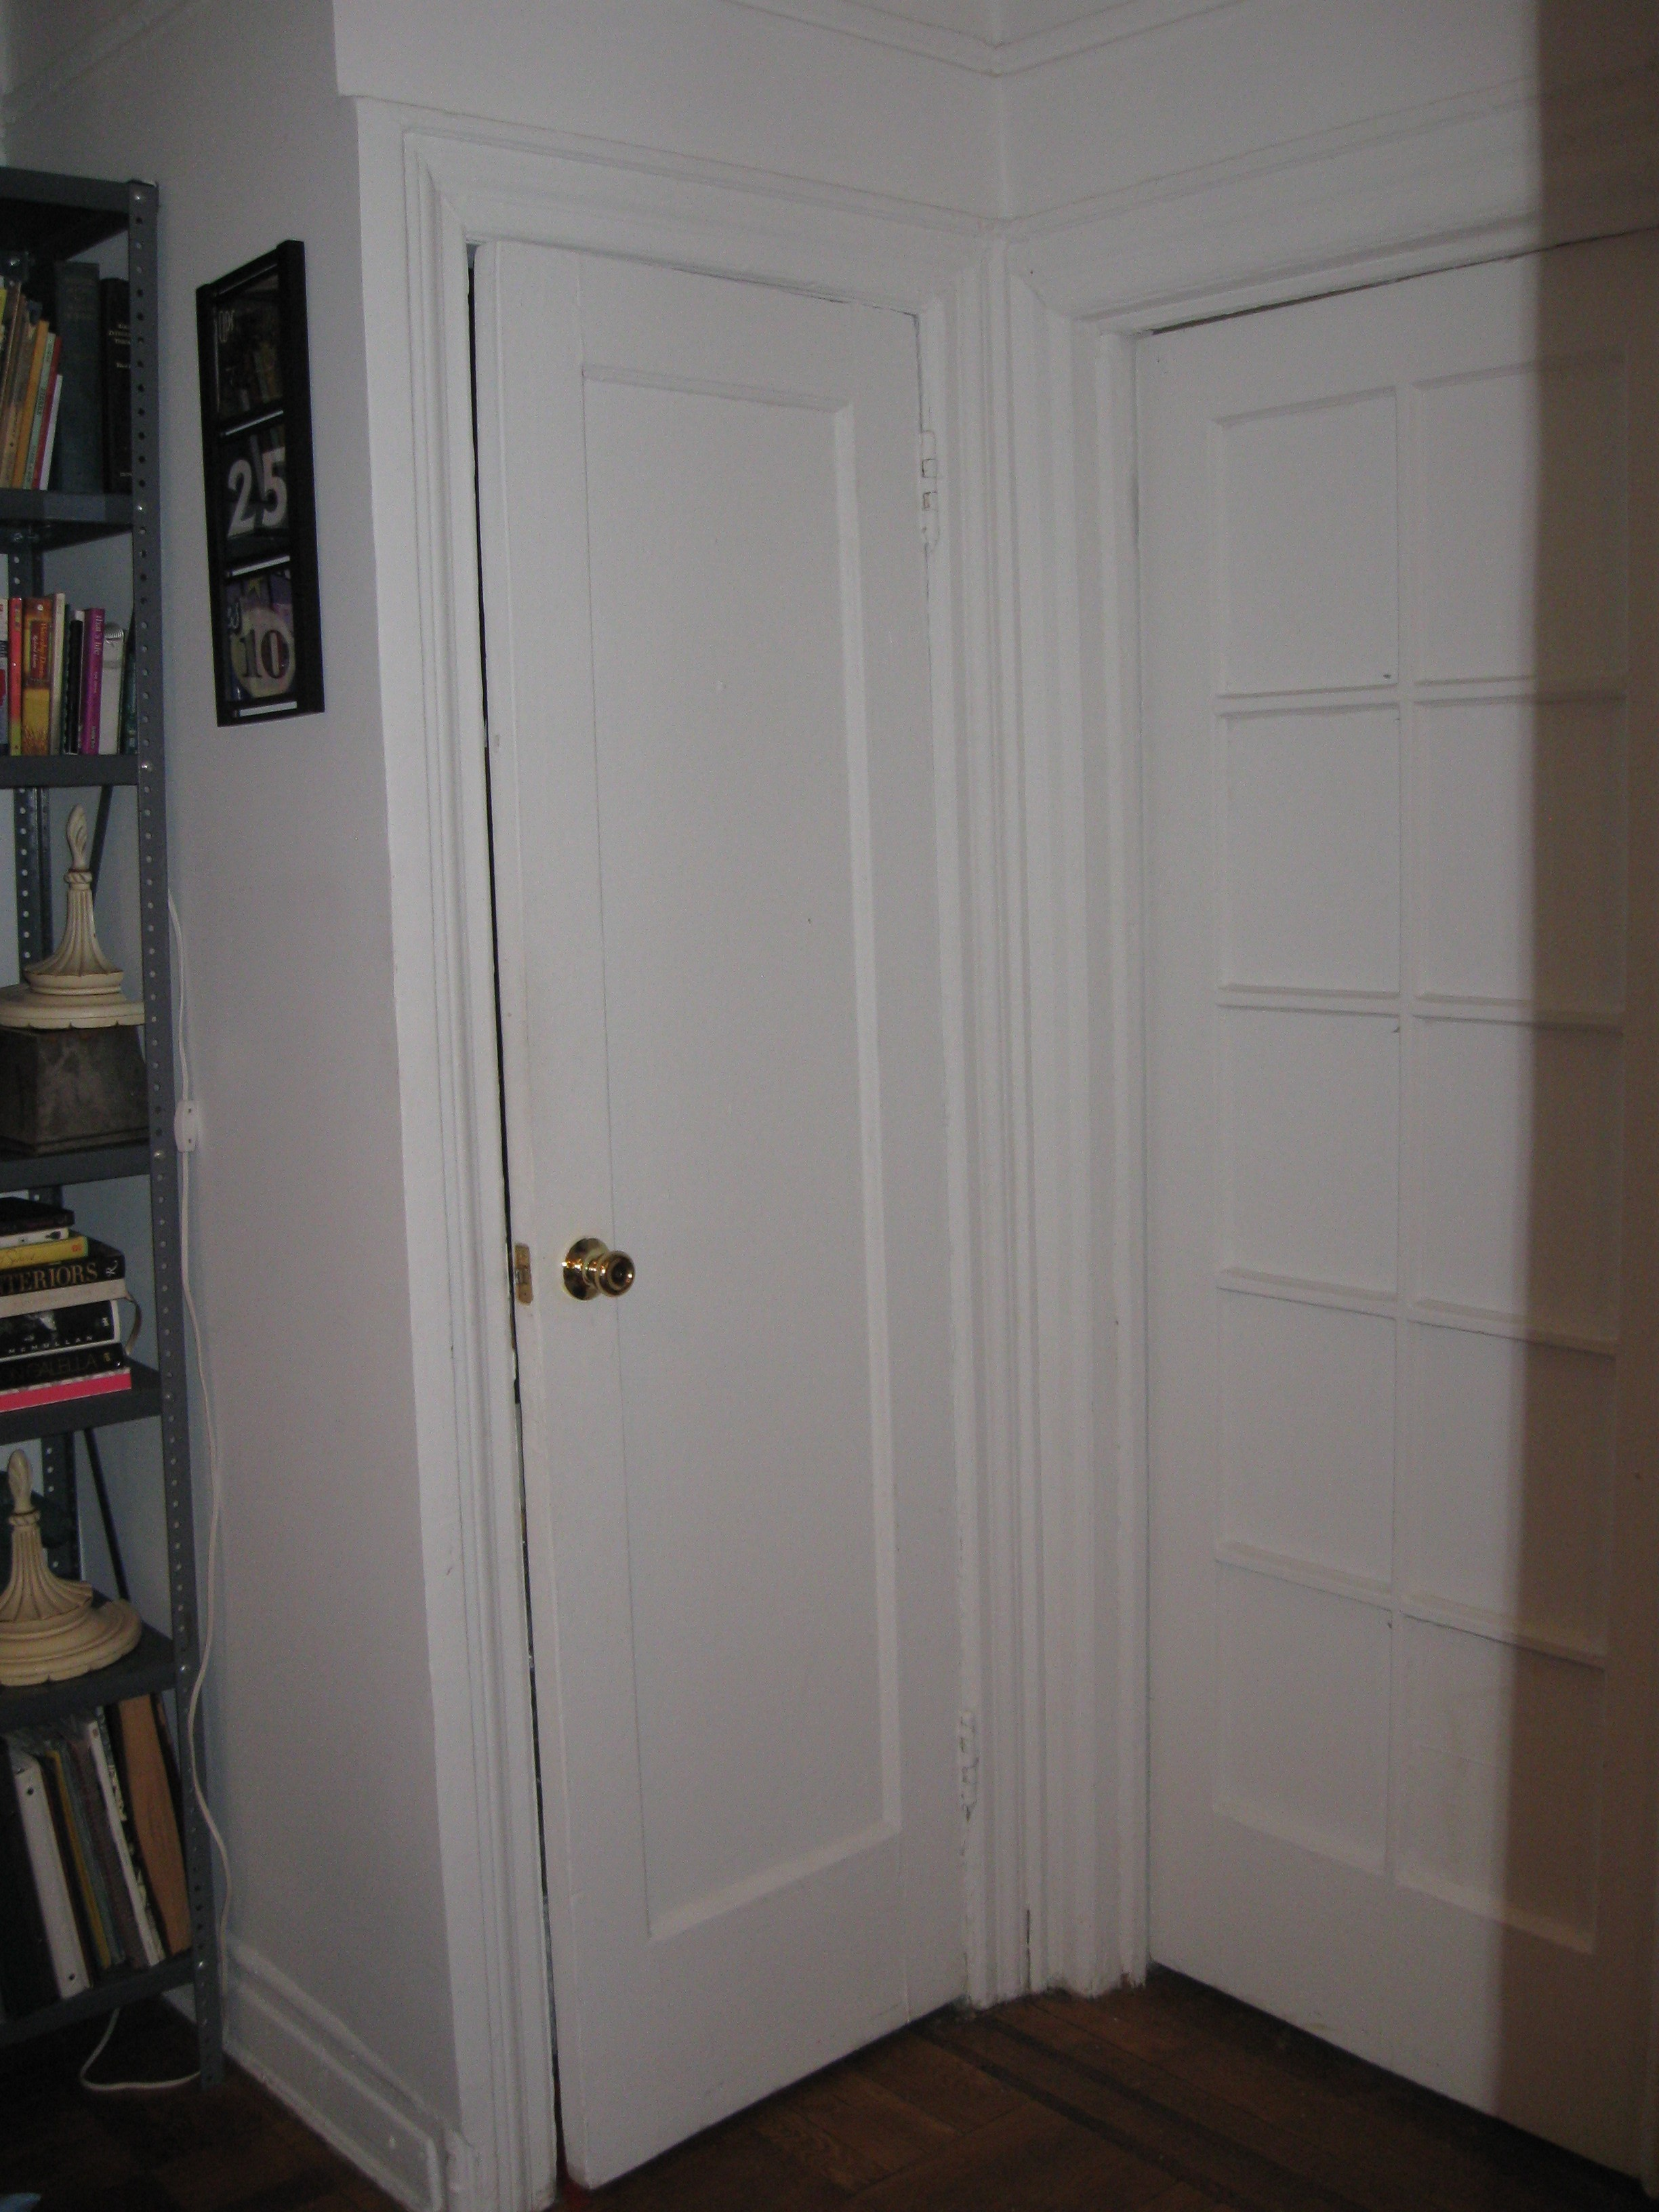 First version of prop closet door